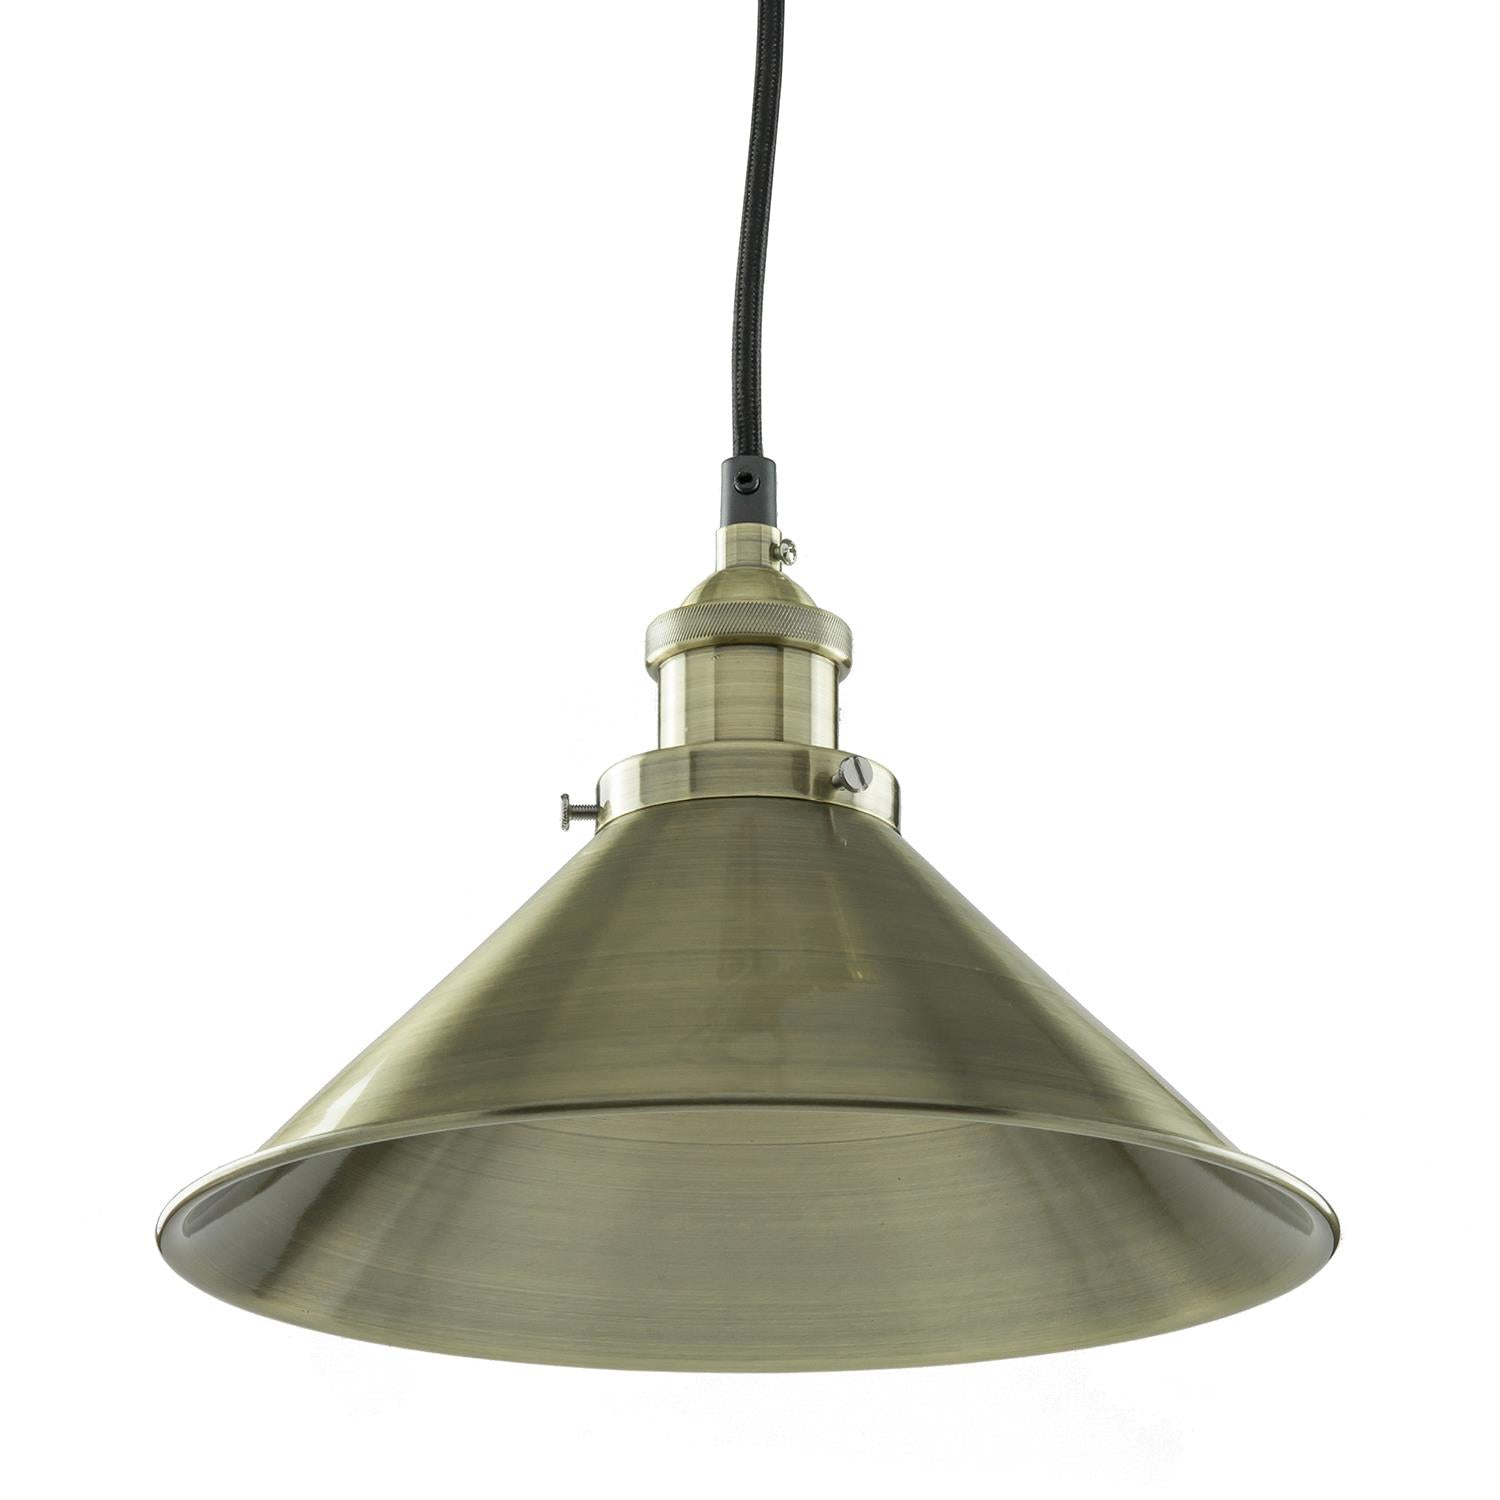 "Sunlite 07007-SU 8"" Canopy Pendant Fixture in Antique Bronze Finish"